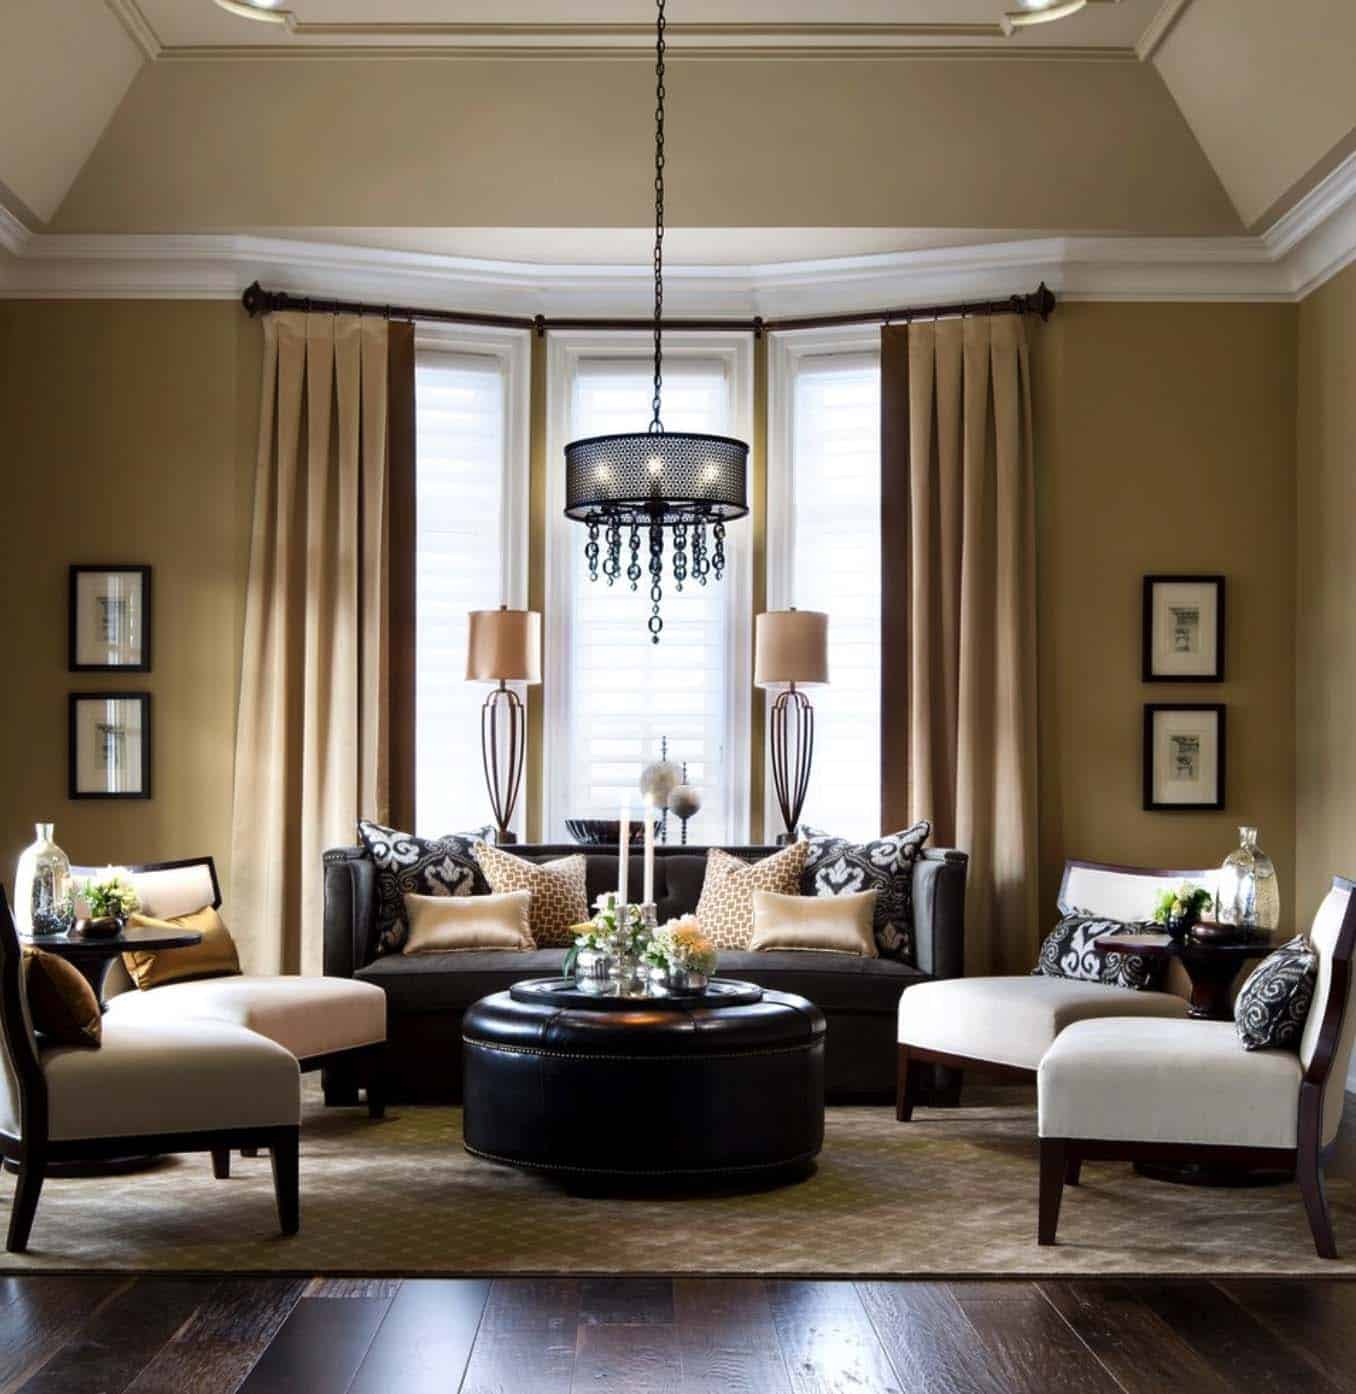 38 elegant living rooms that are brilliantly designed - Home and living ...